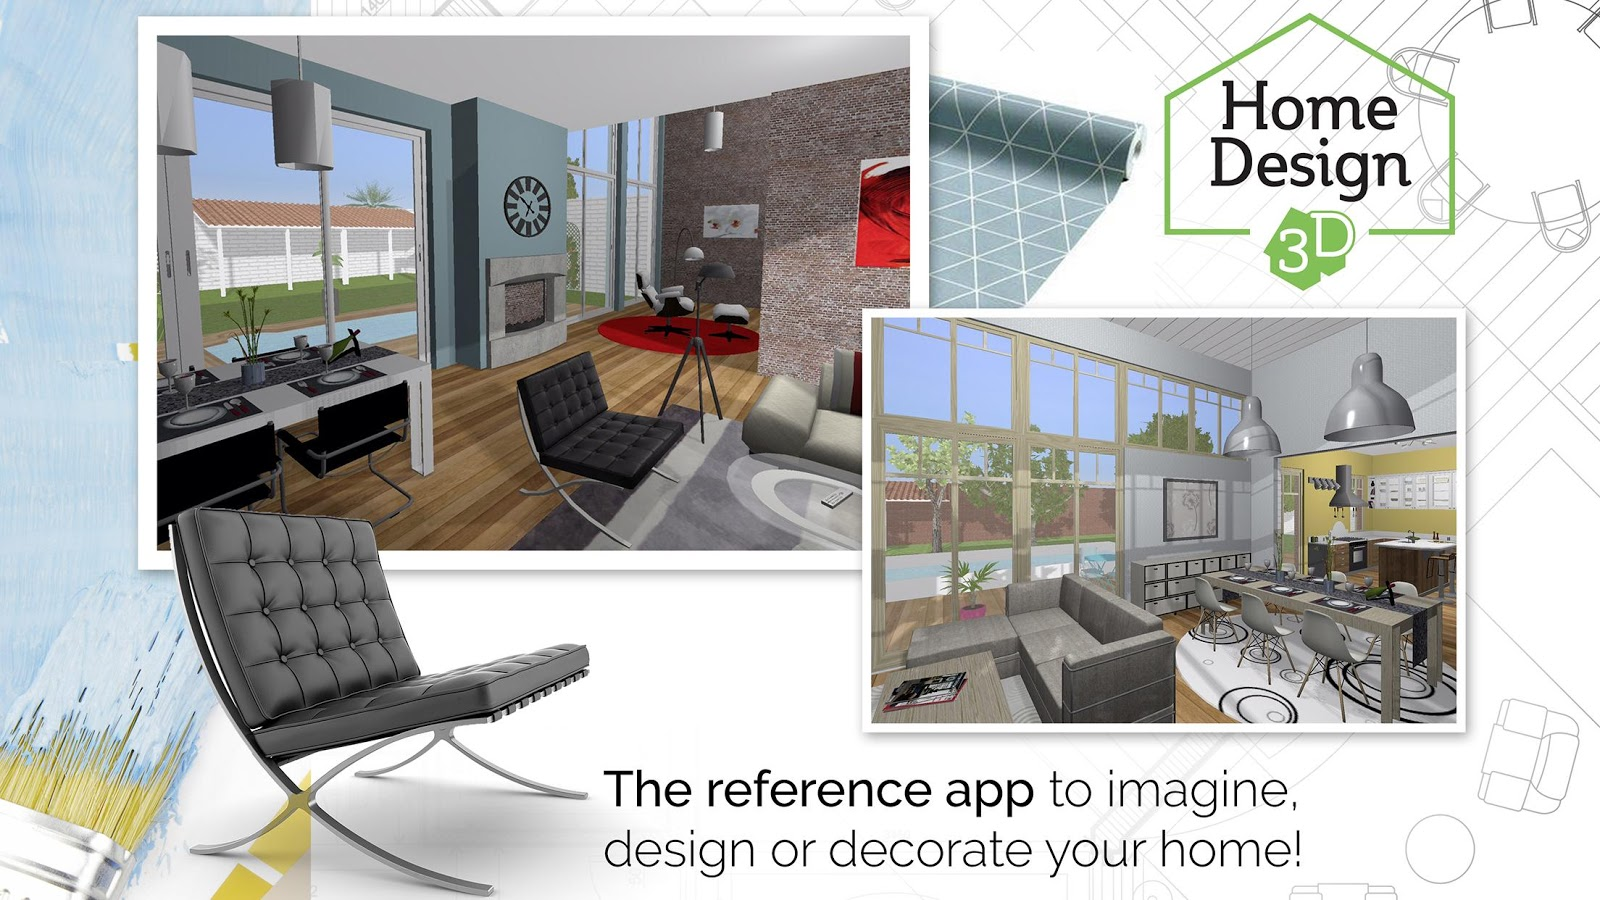 Home design 3d freemium android google play for Room design app for mac